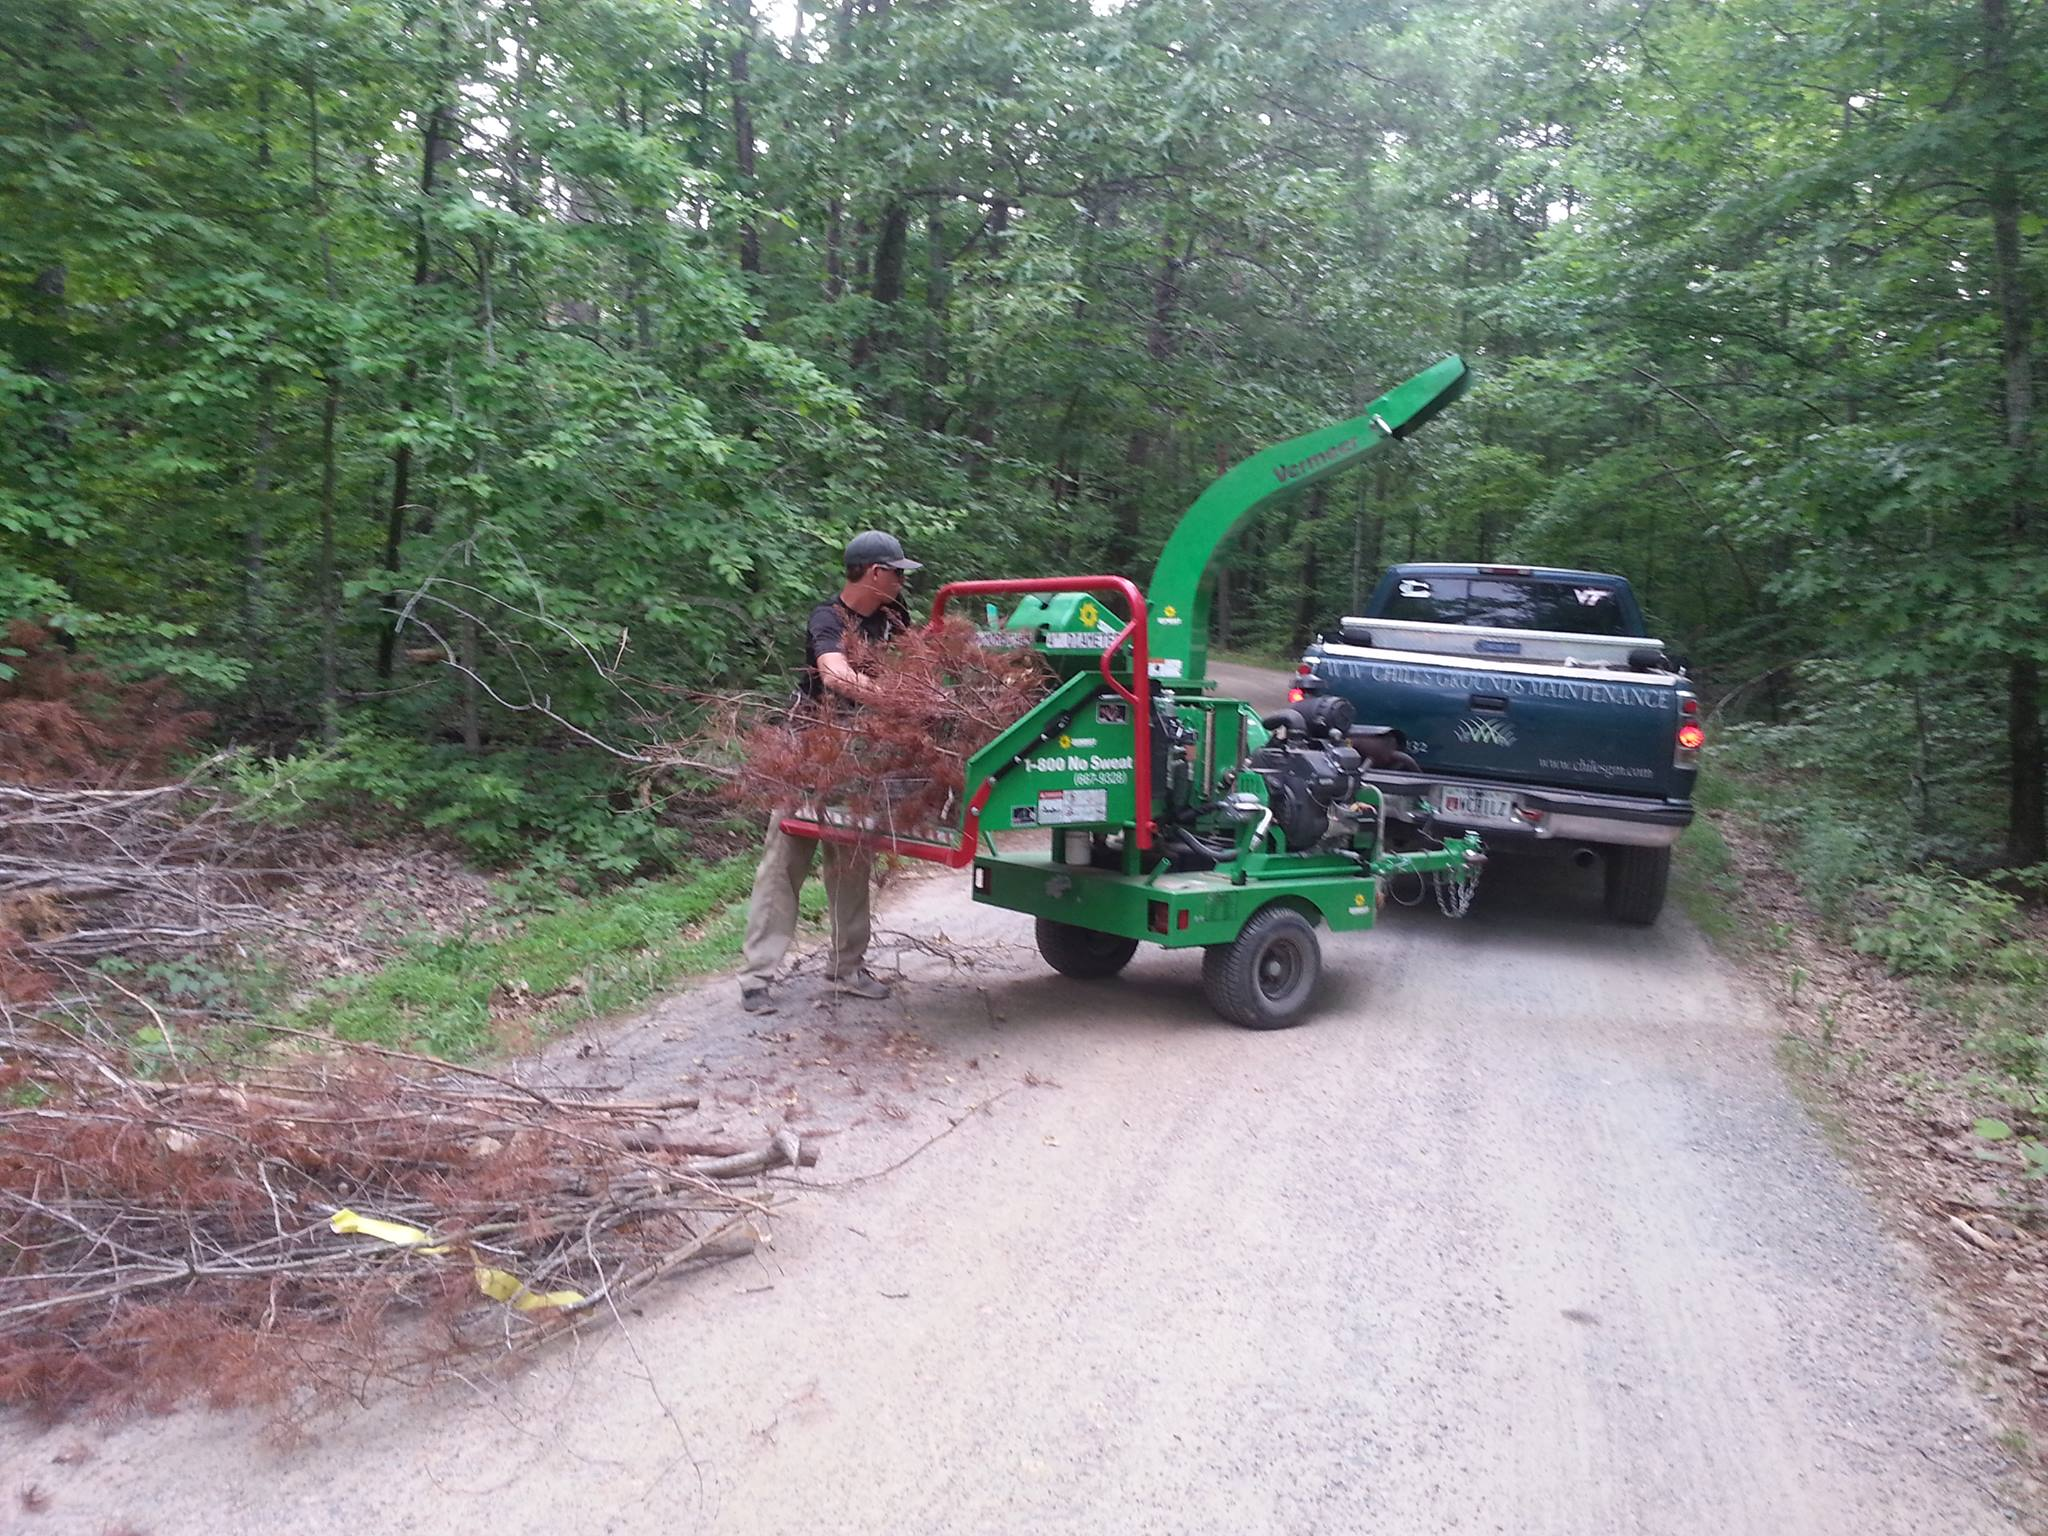 tree care professional pushing tree limbs into a wood chipper